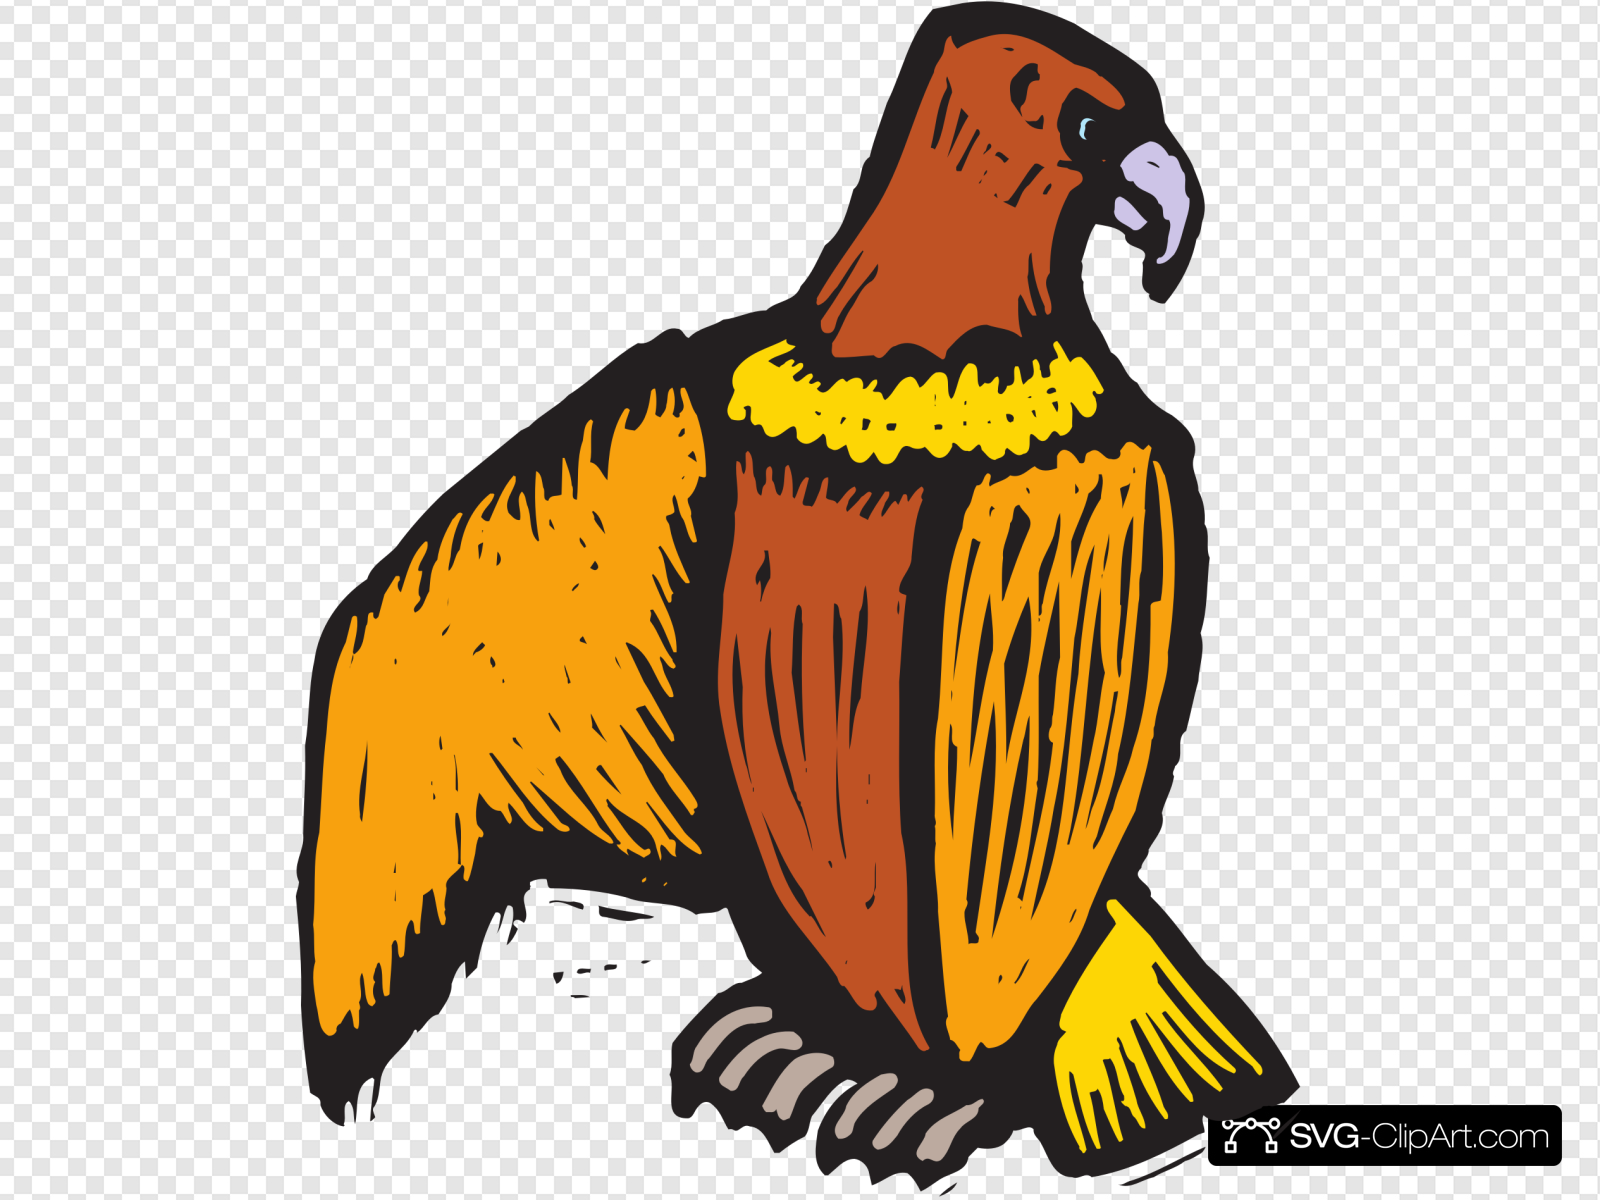 Scratch Off Eagle Art Clip art, Icon and SVG.